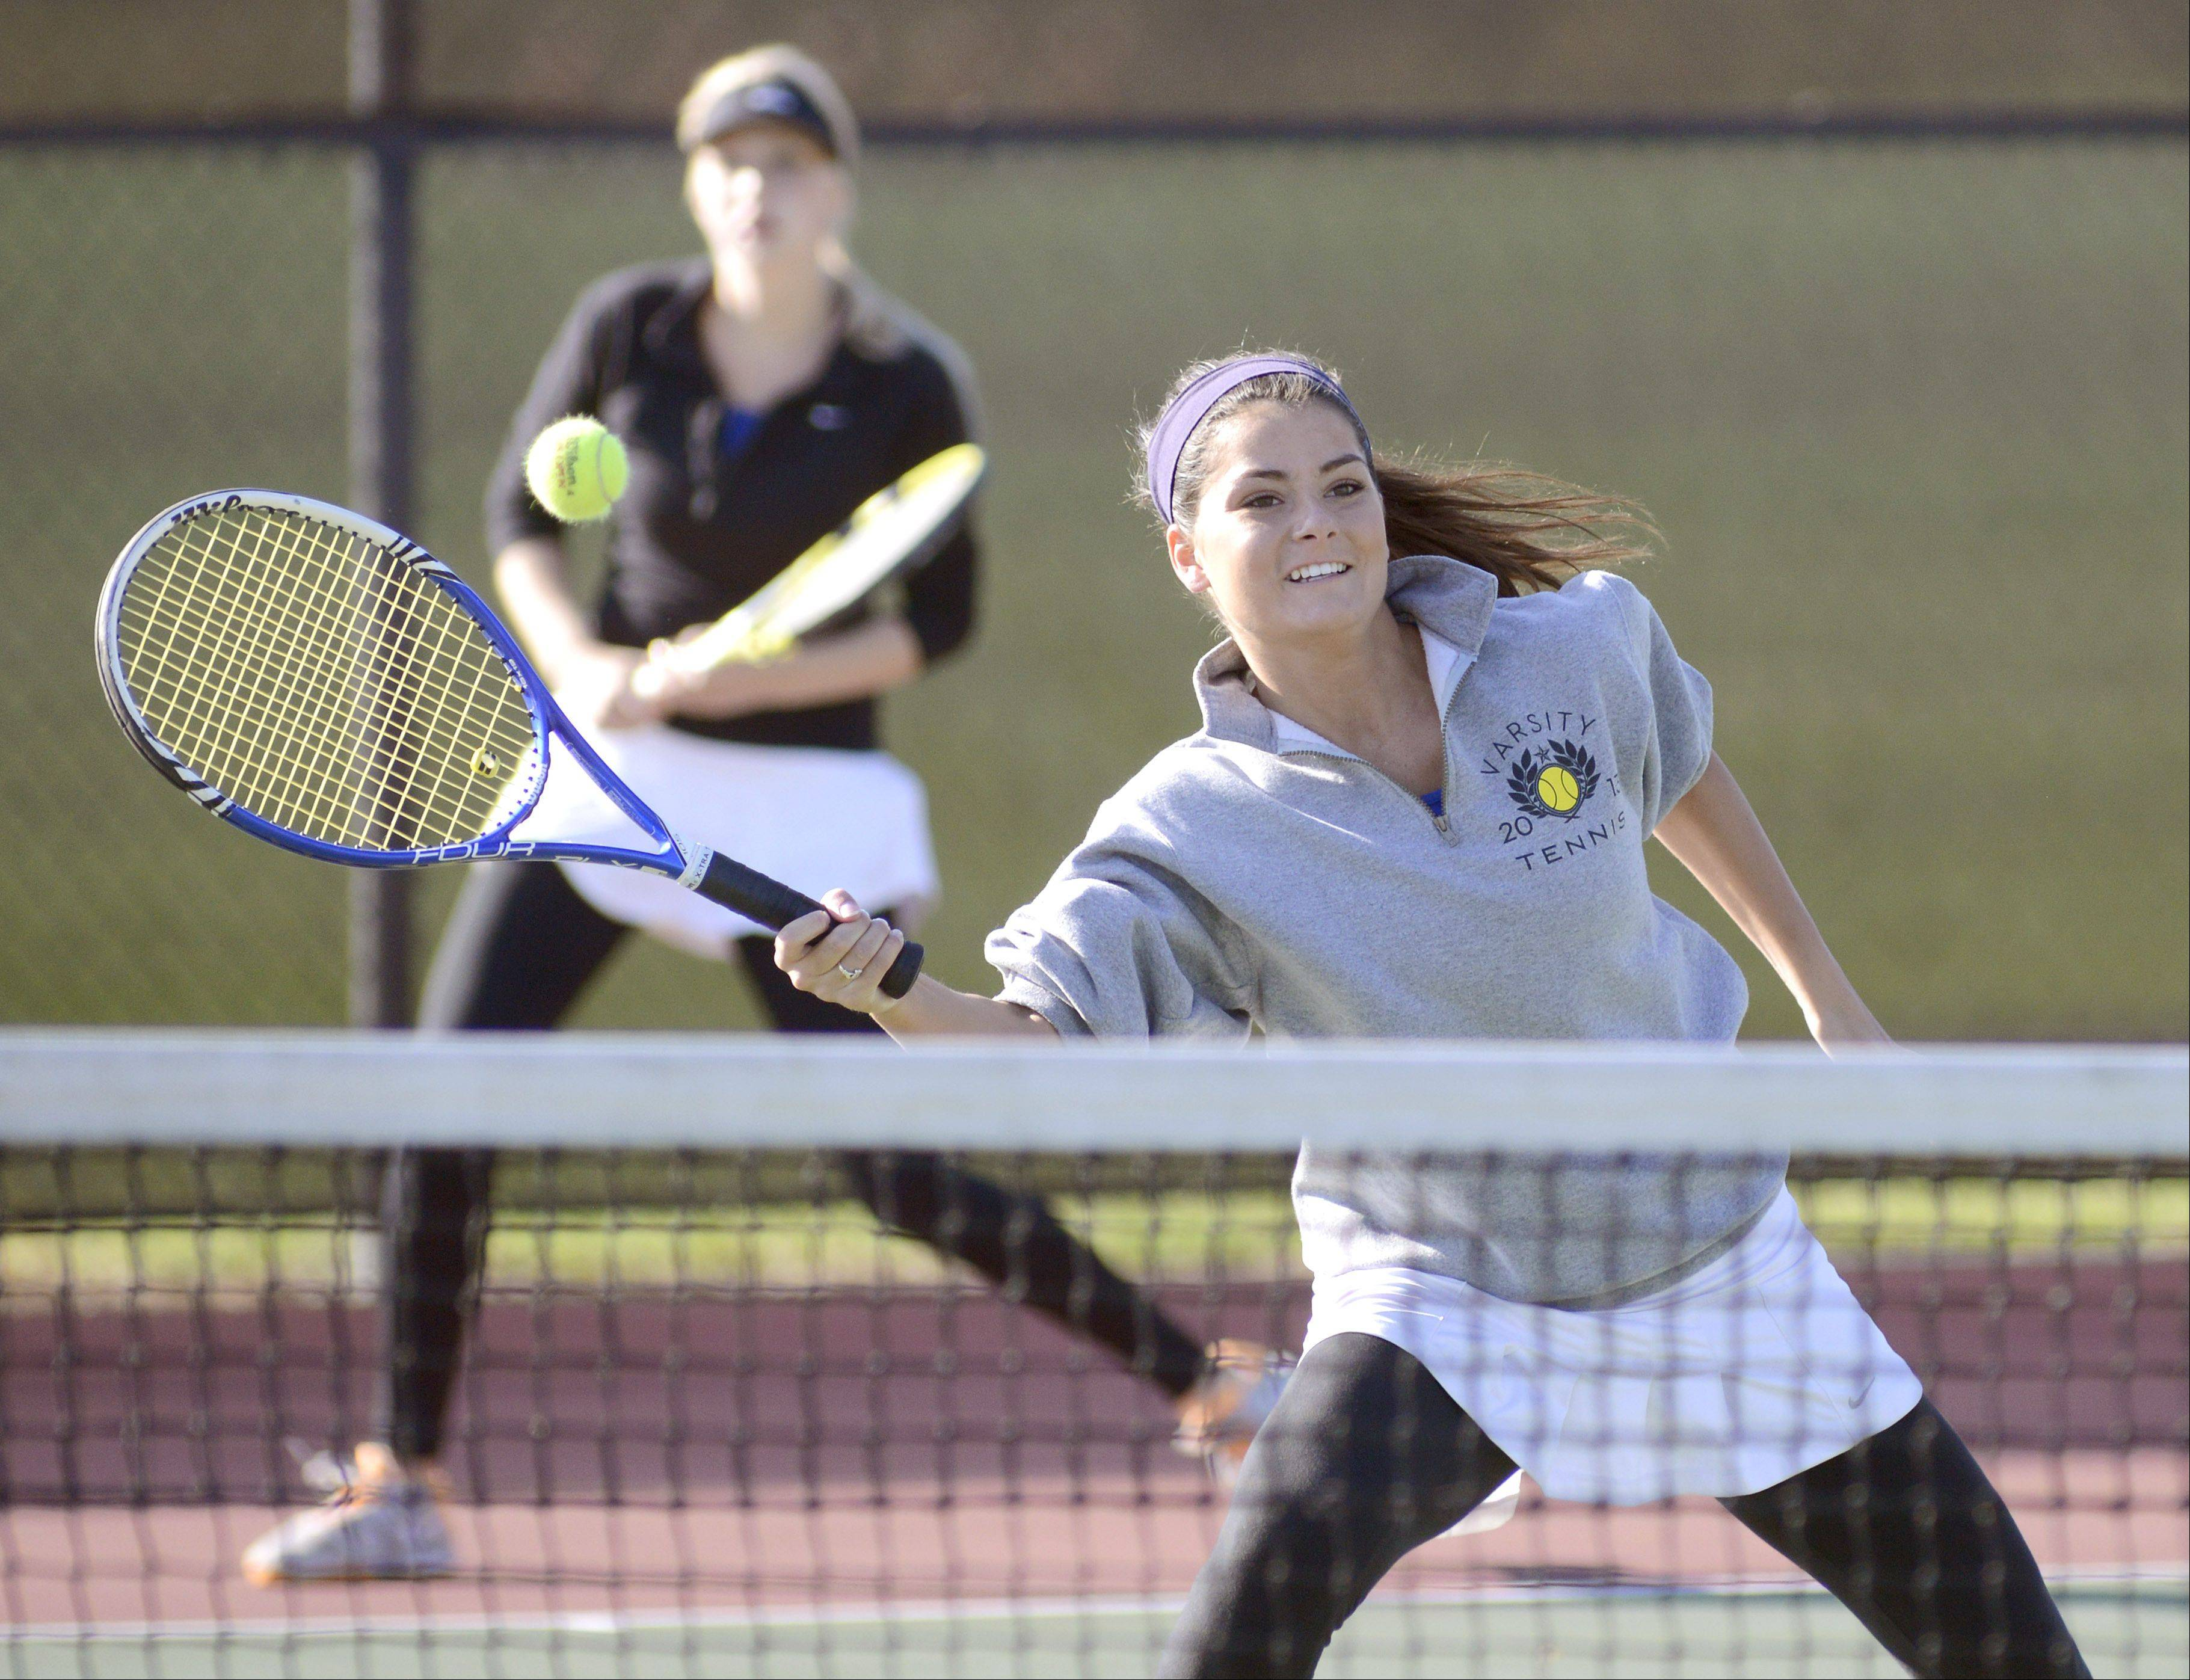 Geneva's Margo Hess plays against St. Charles East in Saturday's sectional tennis match. Hess and her doubles partner, Emma Hazel, qualified for state.